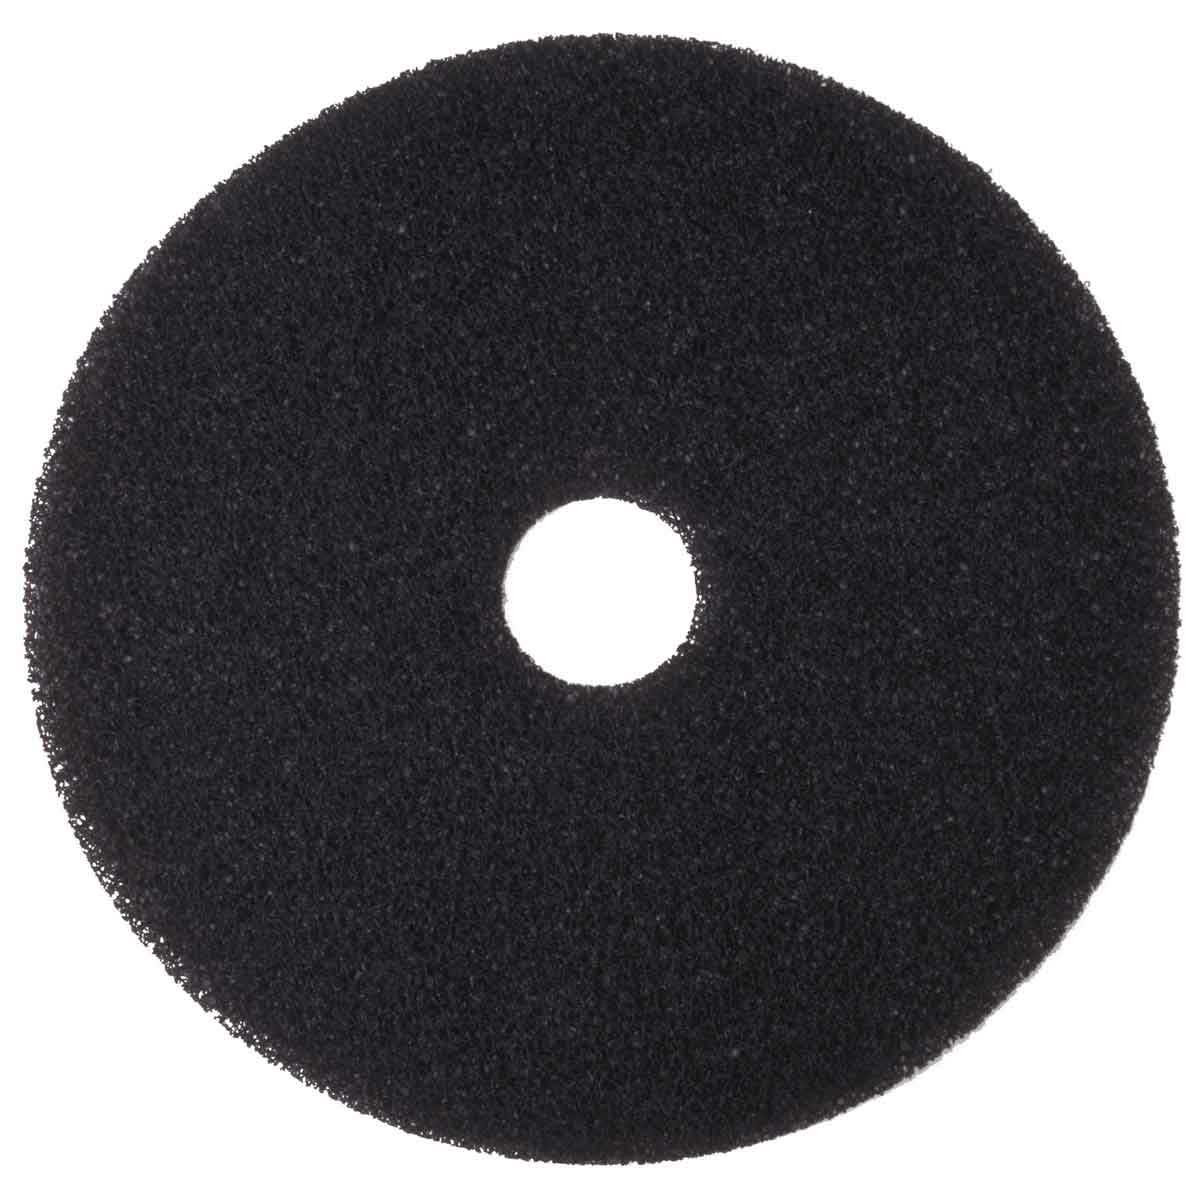 Hawk Black Stripping Floor Pads